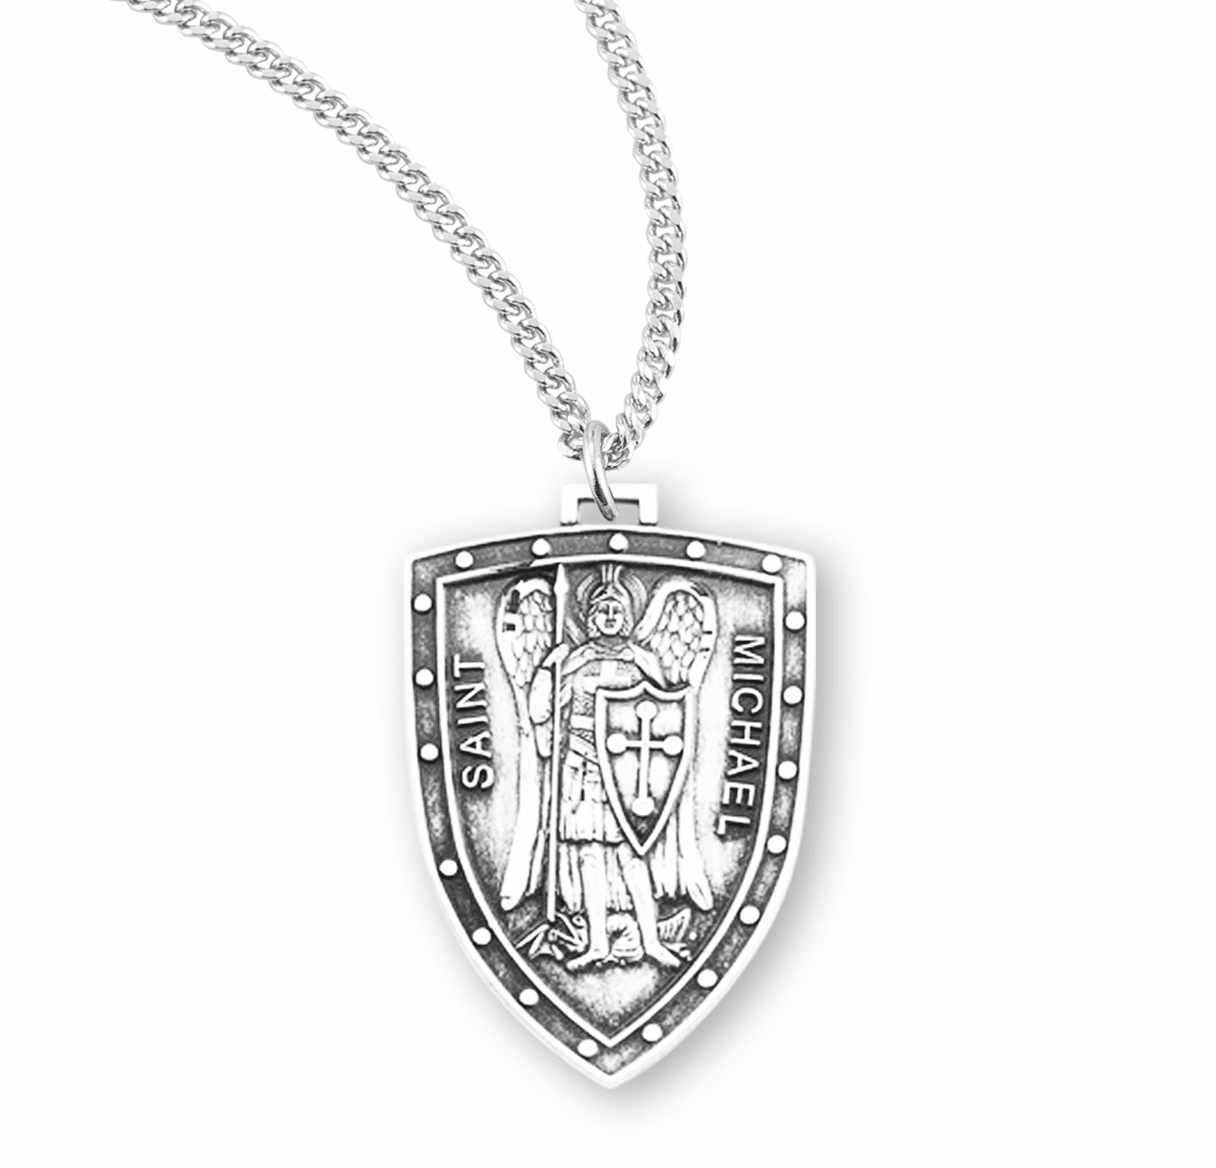 St Michael Sterling Silver Shield Necklace by HMH Religious